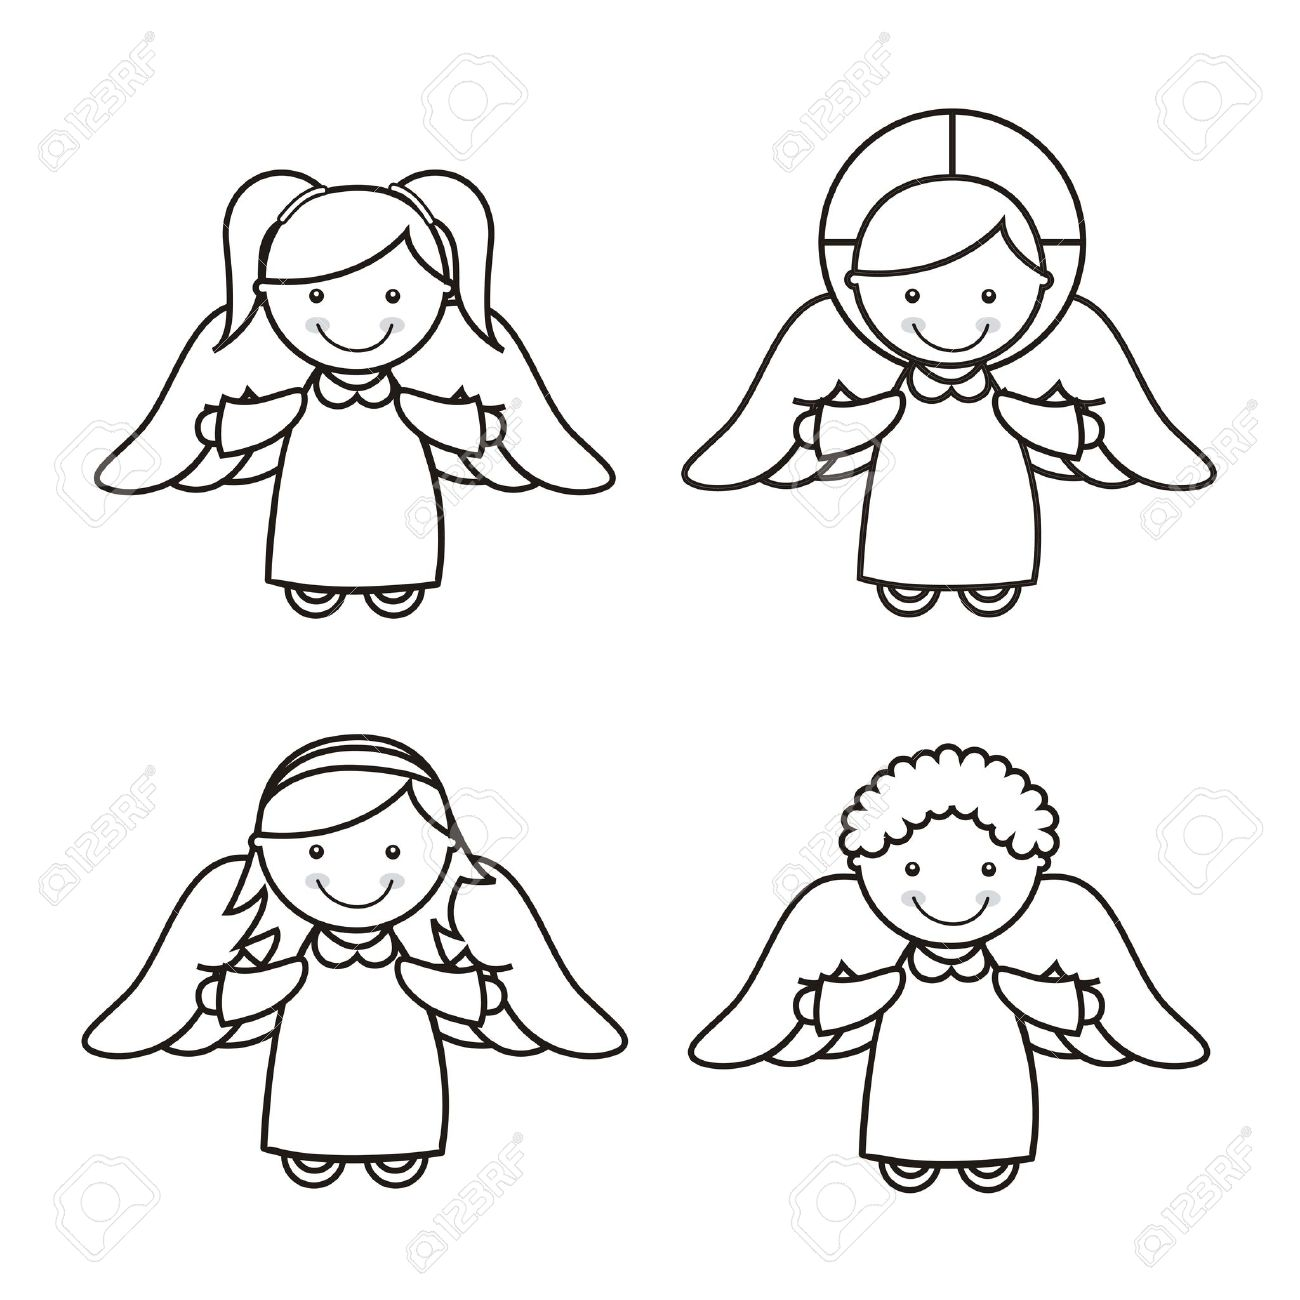 Angel Cartoon Over White Background Vector Illustration Royalty Free Cliparts Vectors And Stock Illustration Image 18606907